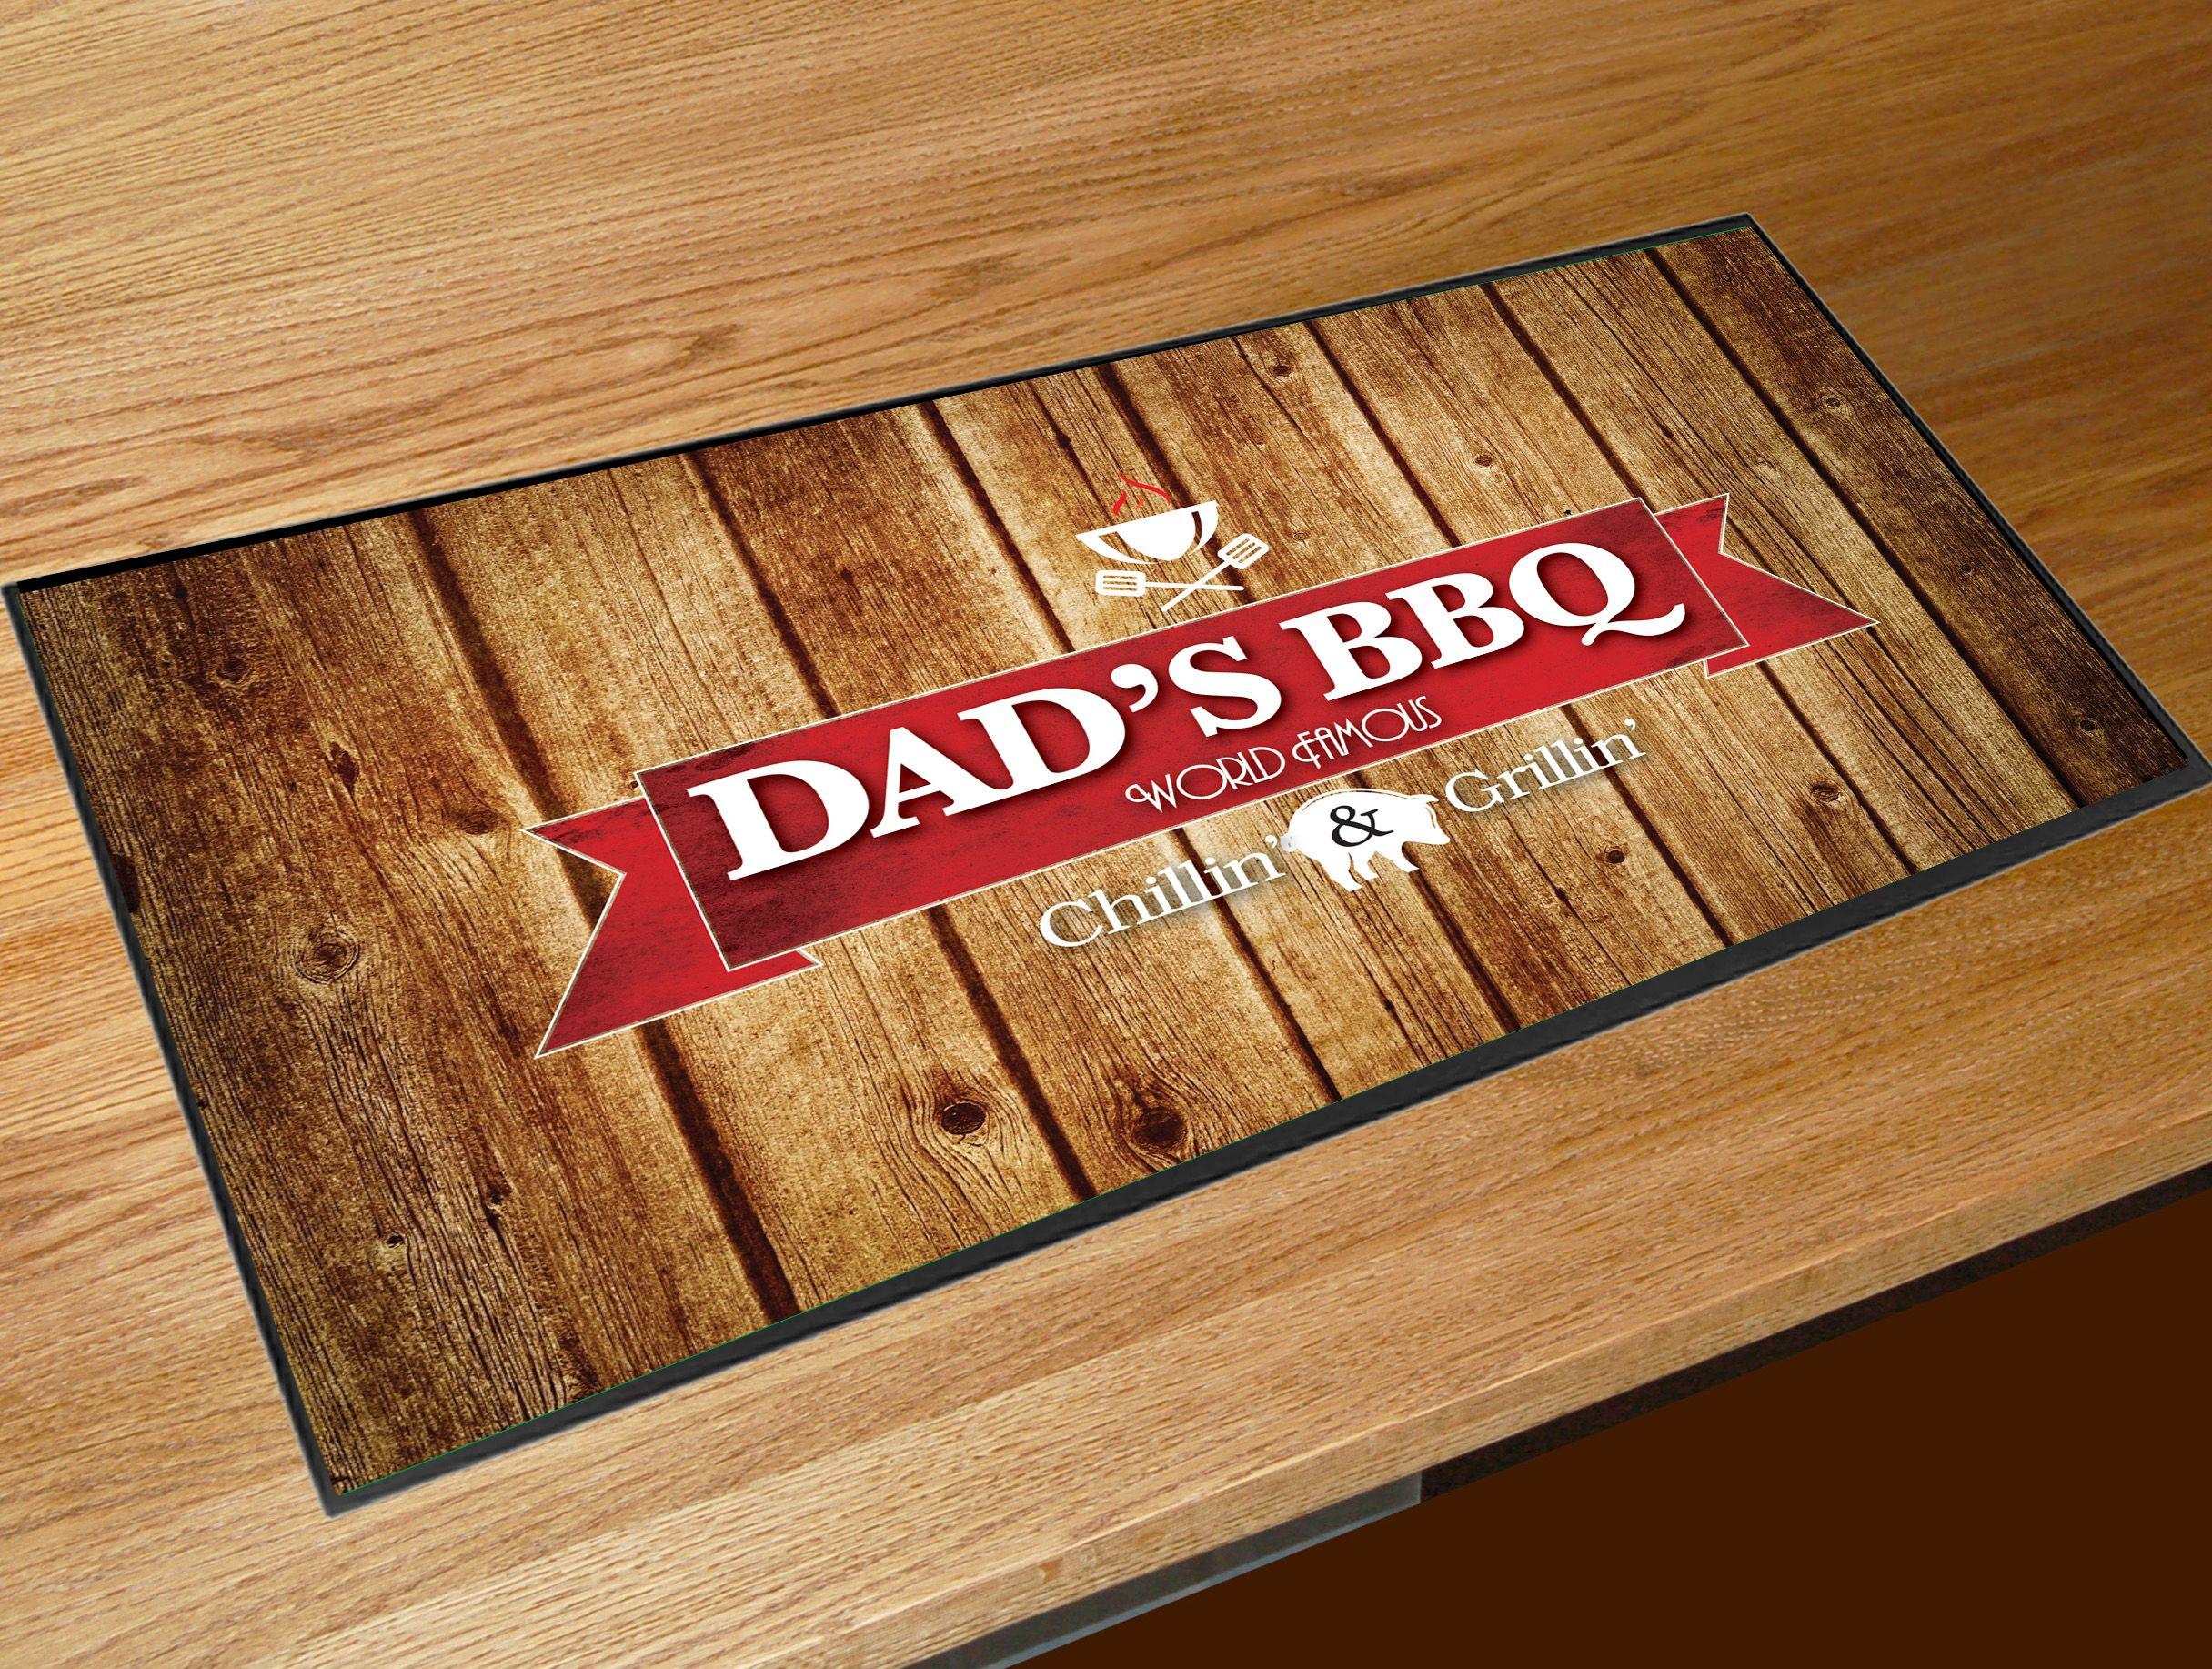 Dad's BBQ bar runner gift  Digitally Printed polyester surface with a non slip rubber backing. Perfect for any bar, Venue, Pub or home bar  • 440mm x 250mm • Non slip rubber polyester surface • Digital colour printing • machine washable